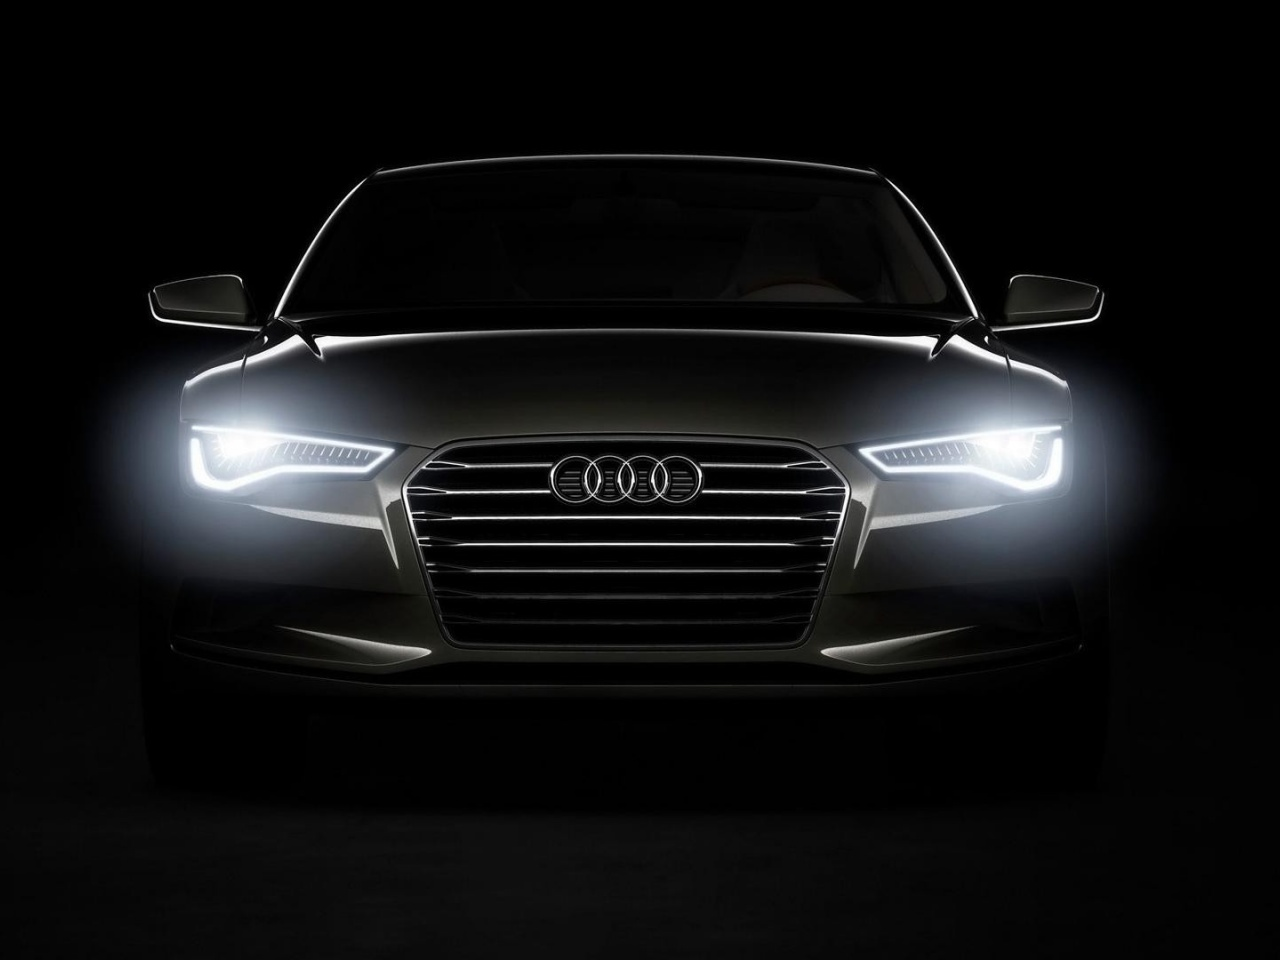 1280x960 Audi Headlights Desktop Pc And Mac Wallpaper